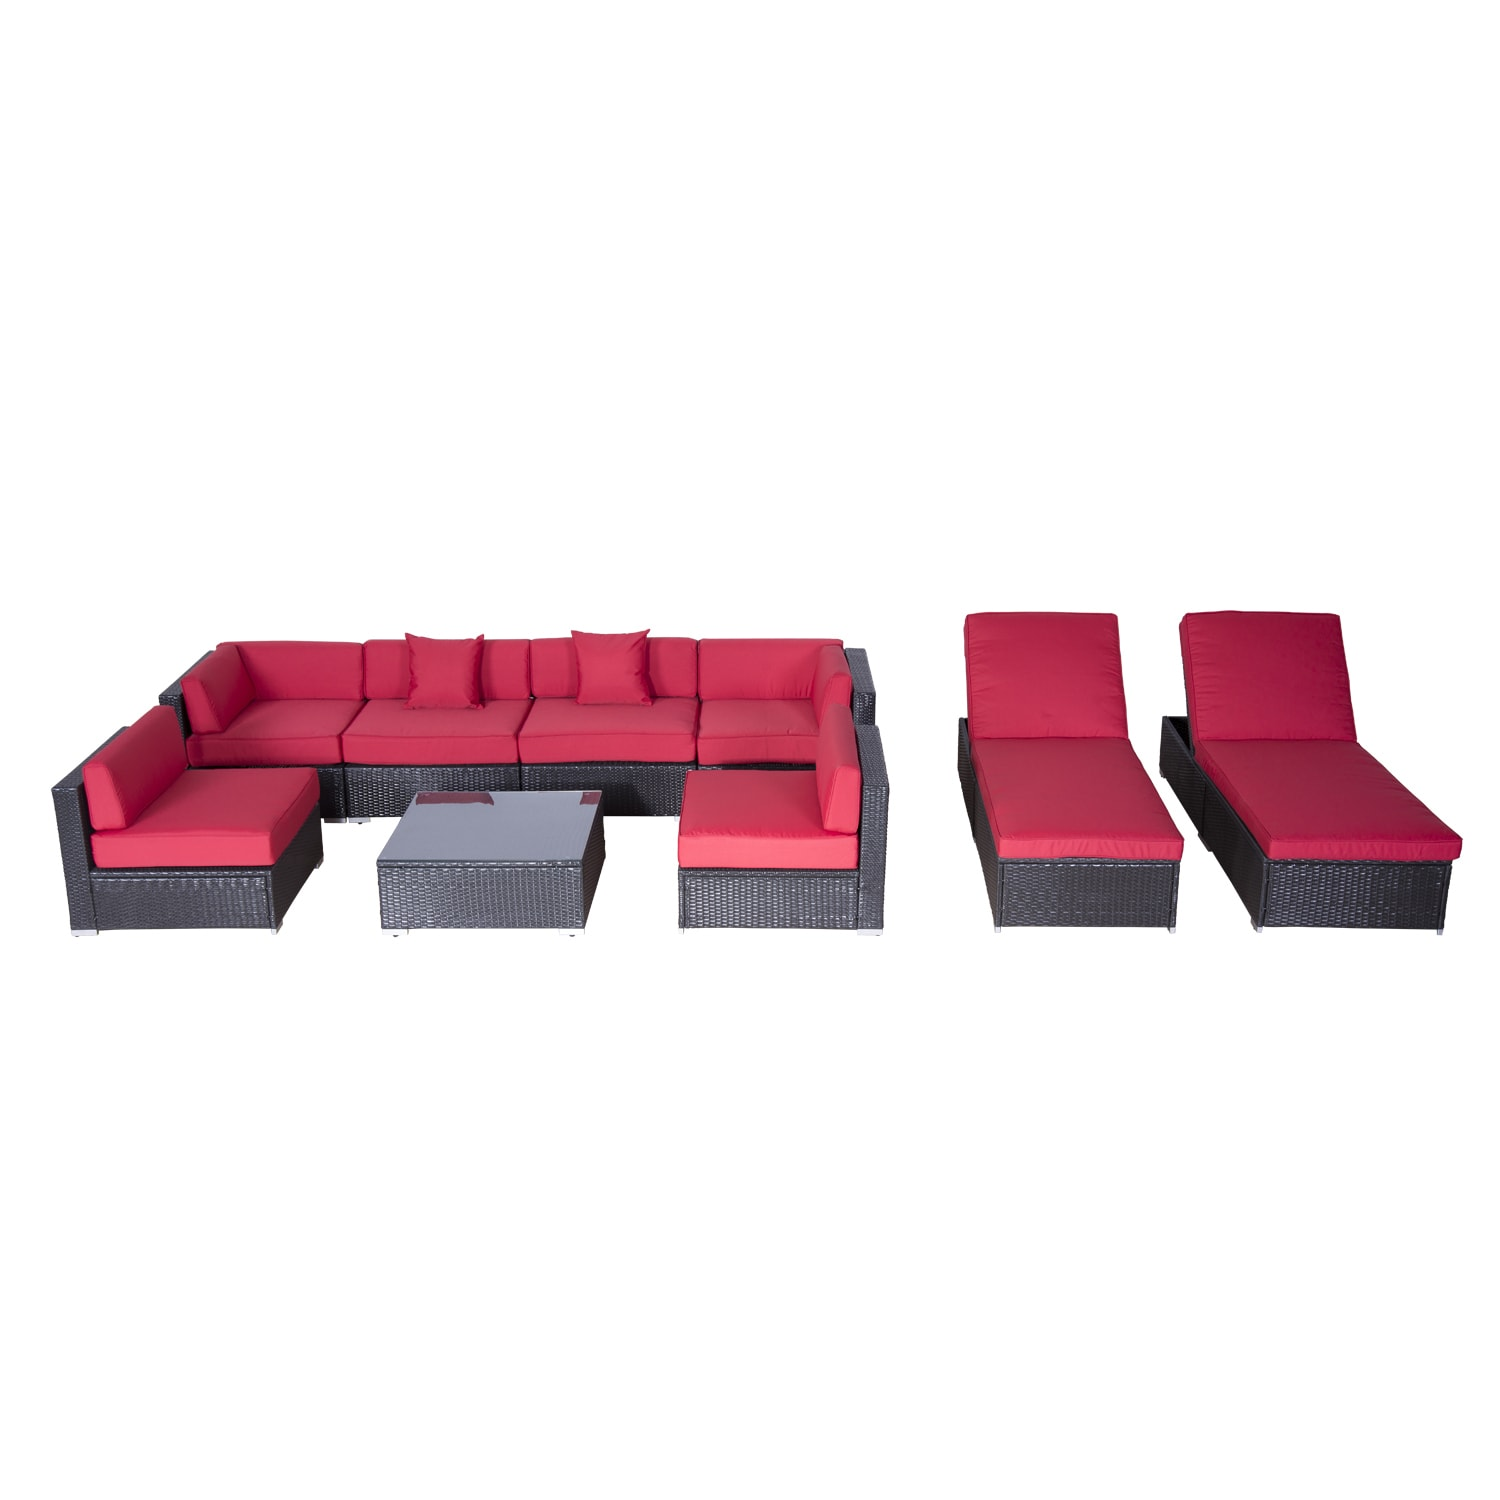 Aosom Outsunny Red Cushioned Rattan Wicker 9-Piece Outdoo...